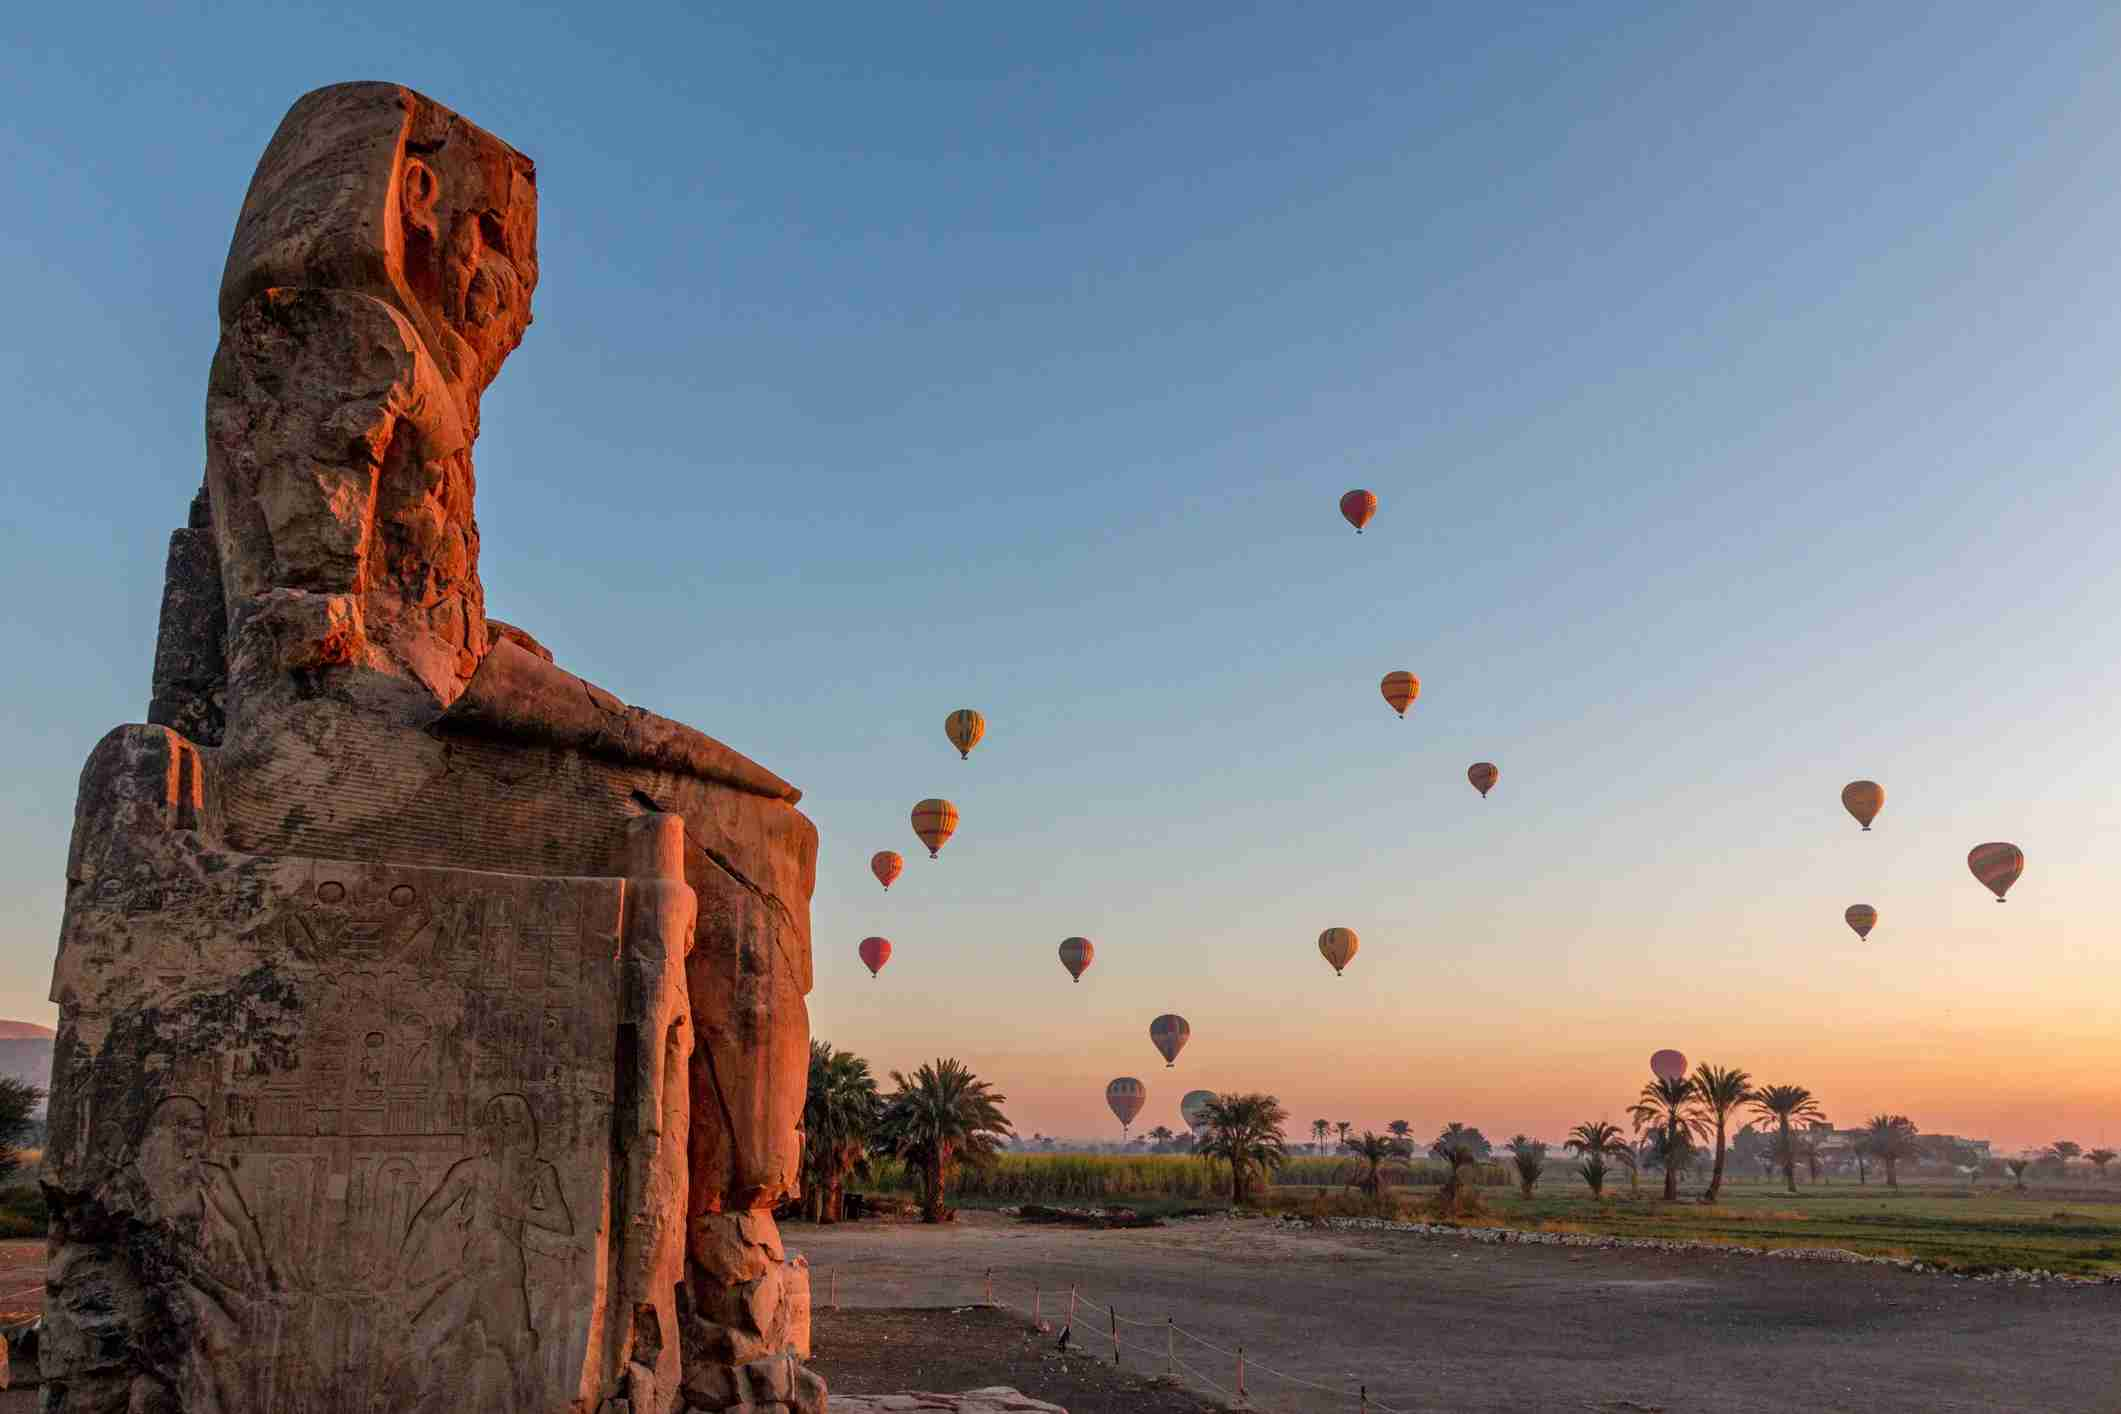 Hot air balloons over the Valley of the Kings near Luxor, Egypt. (Photo via Getty Images)